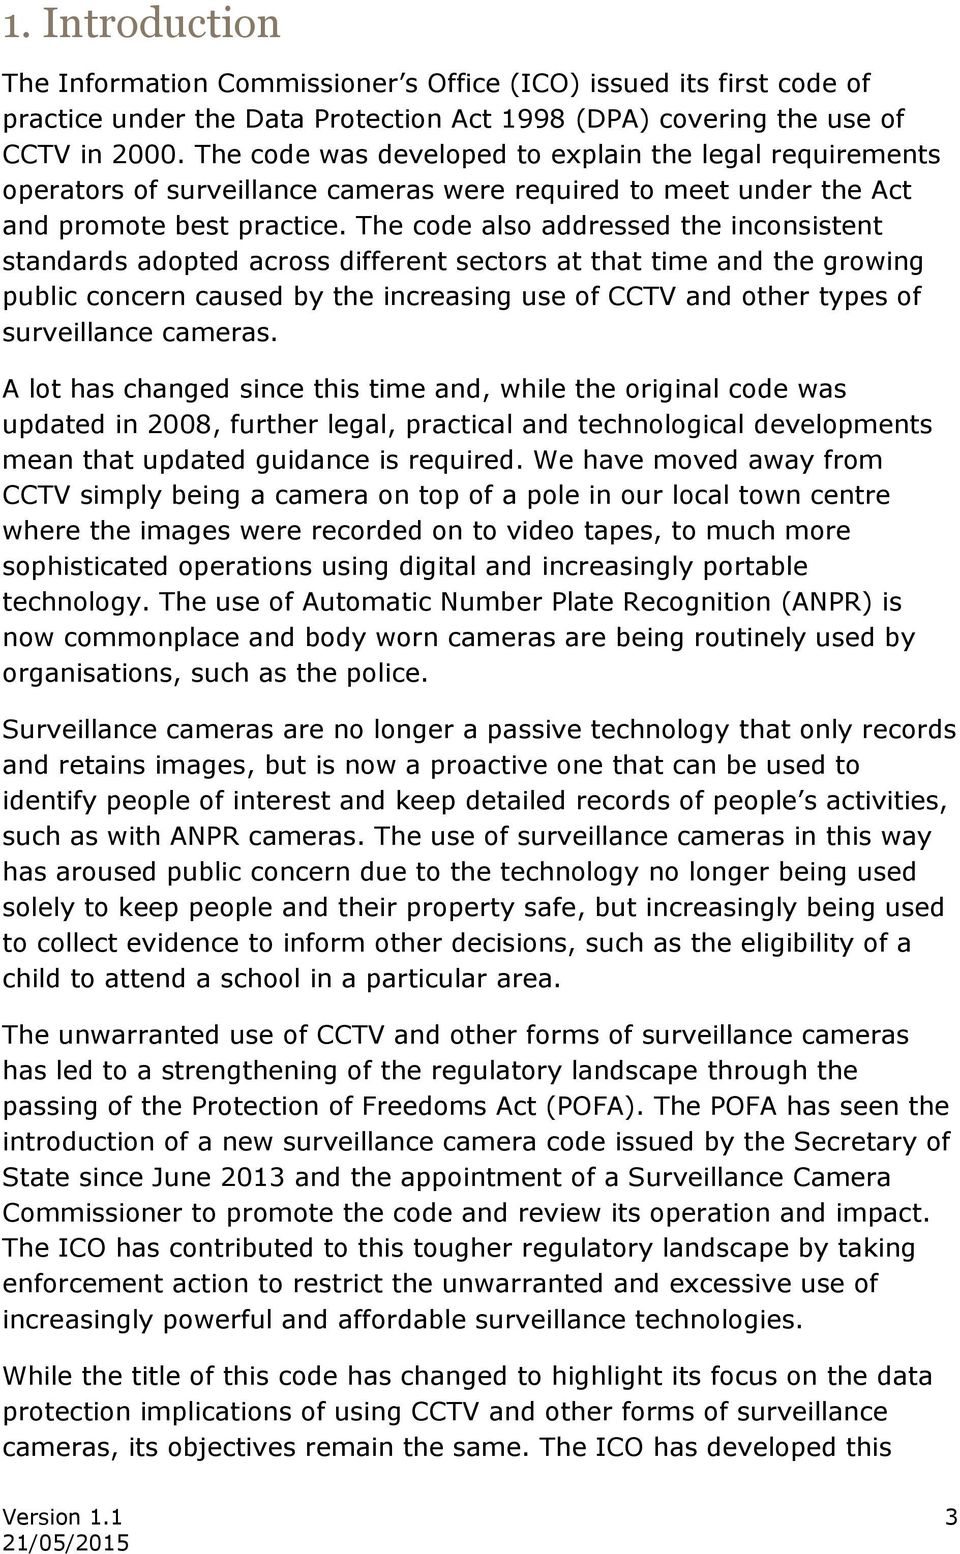 The code also addressed the inconsistent standards adopted across different sectors at that time and the growing public concern caused by the increasing use of CCTV and other types of surveillance